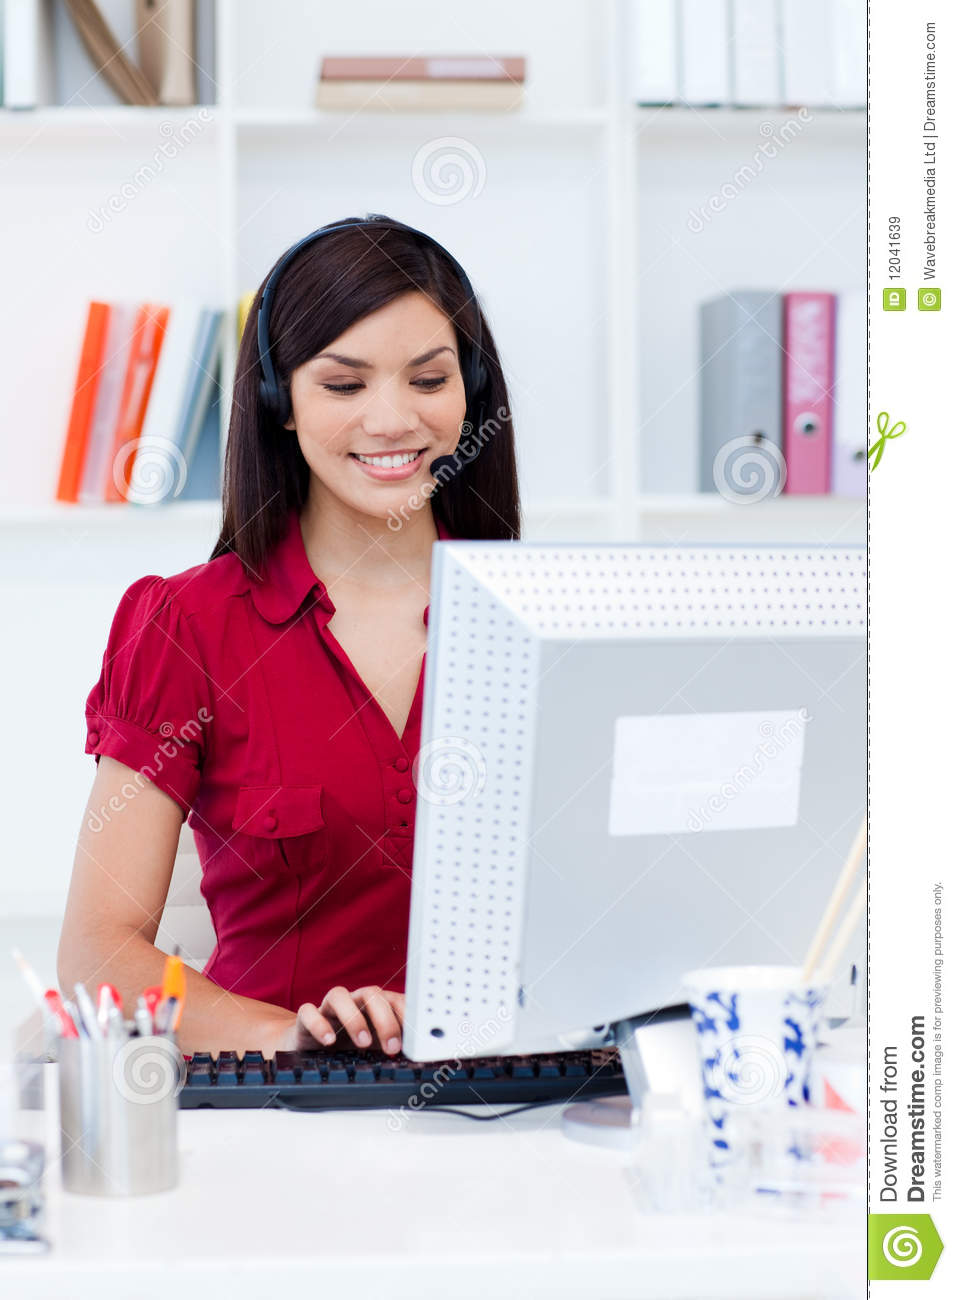 Businesswoman with headset on at a computer